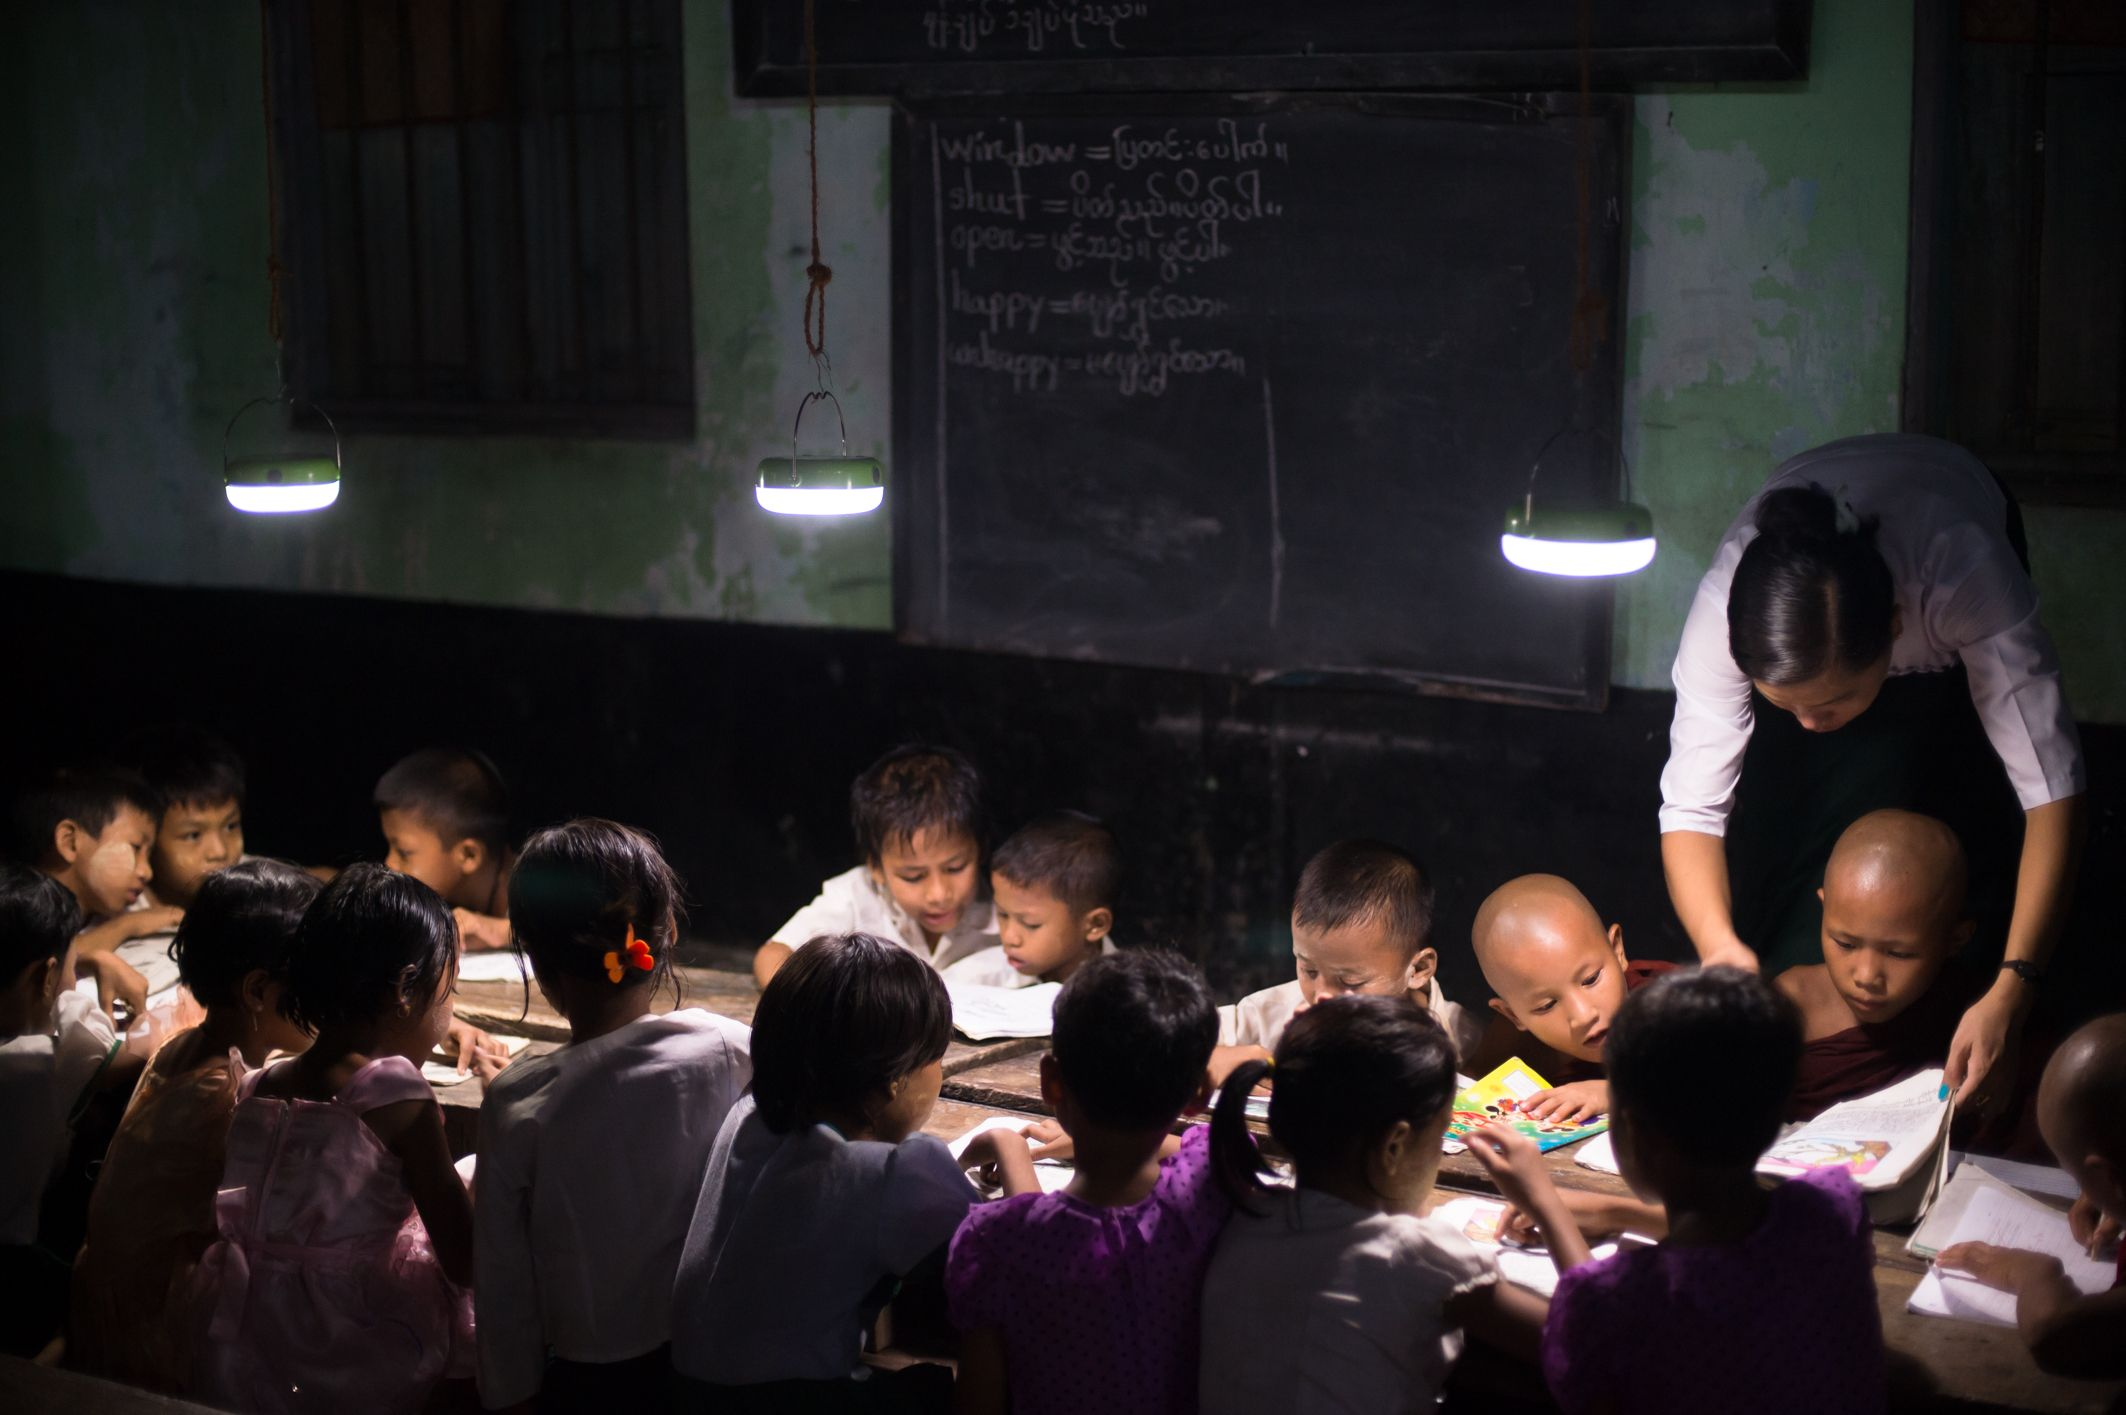 Three new solar lanterns hanged from the ceiling provided enough light to study